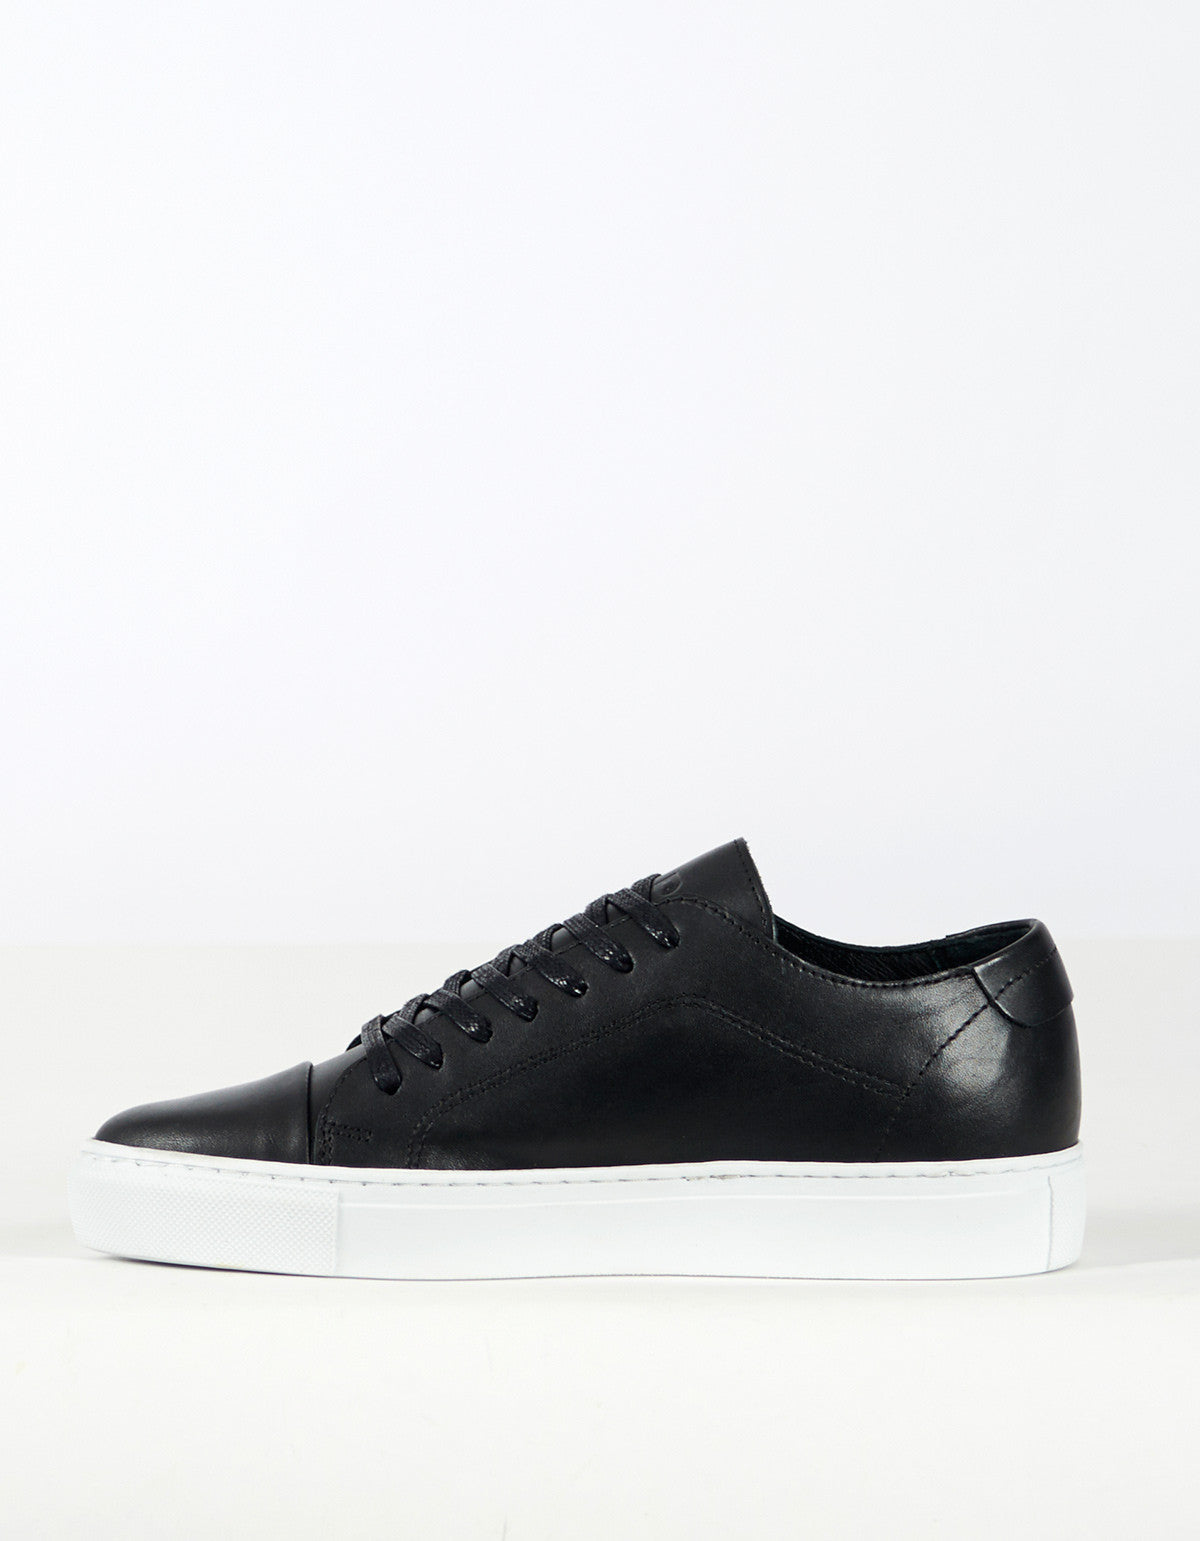 Garment Project Classic Lace Sneaker Black - Still Life - 2